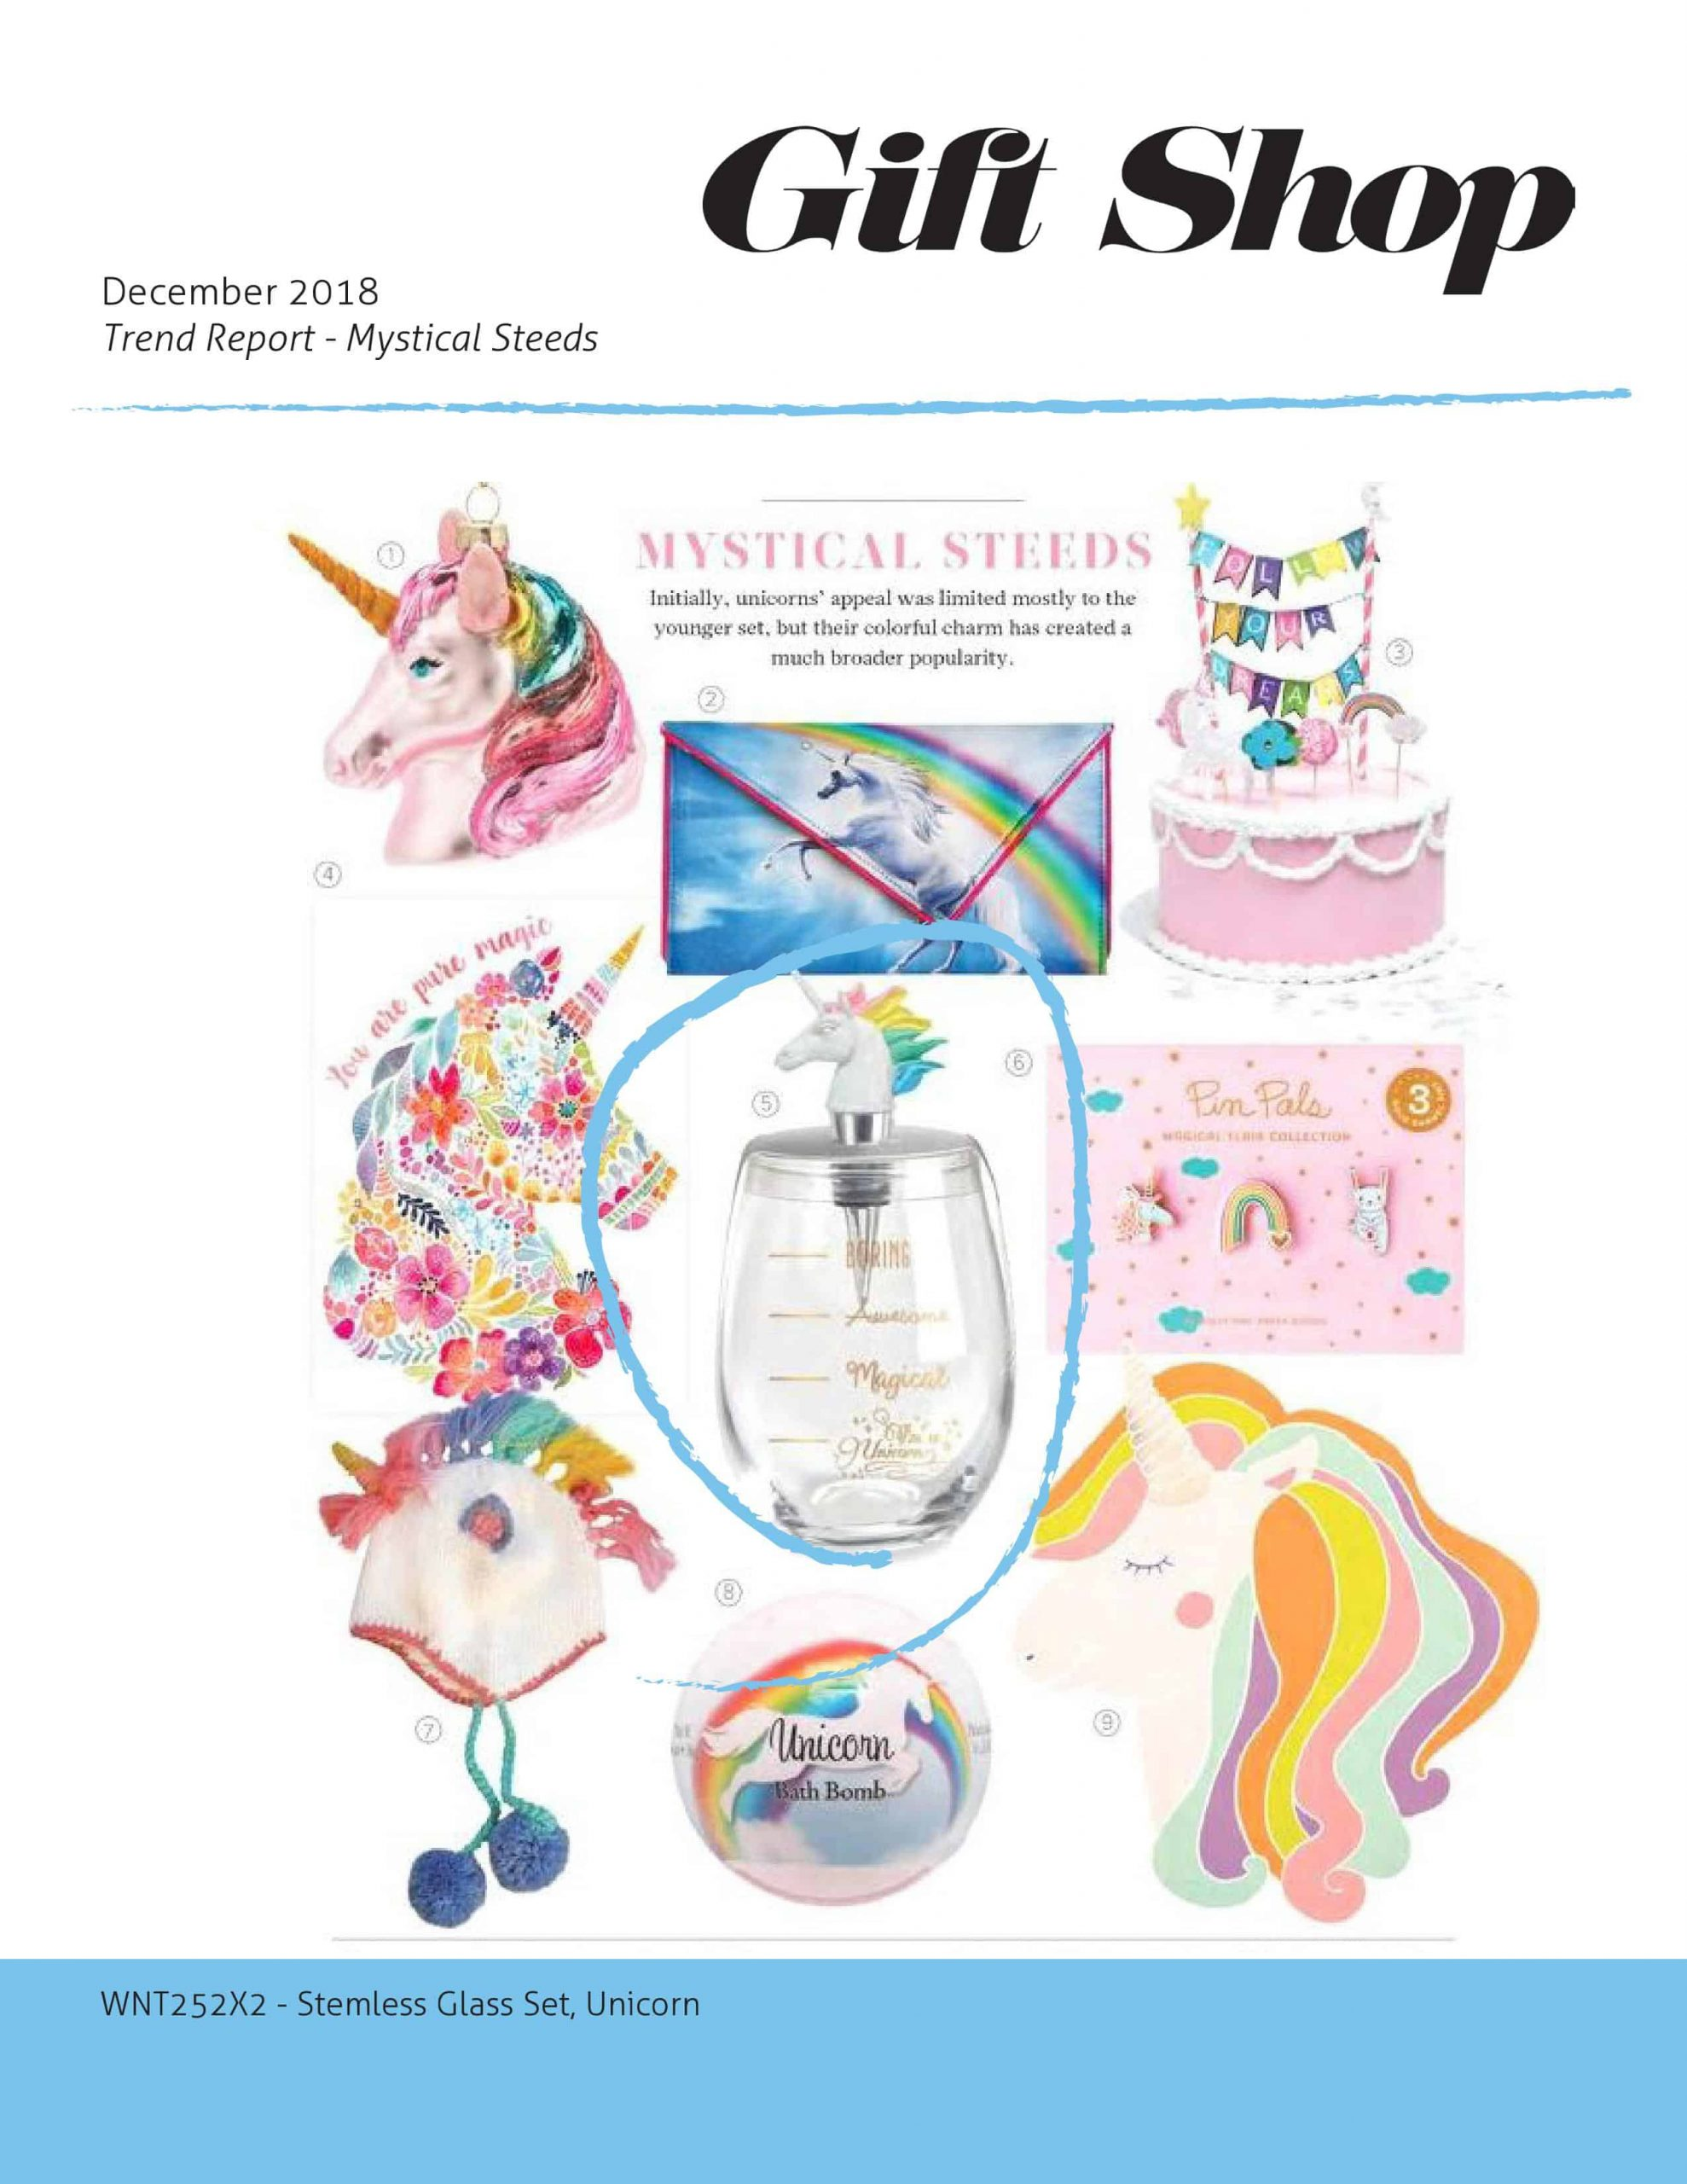 Gift Shop December 2018 Issue